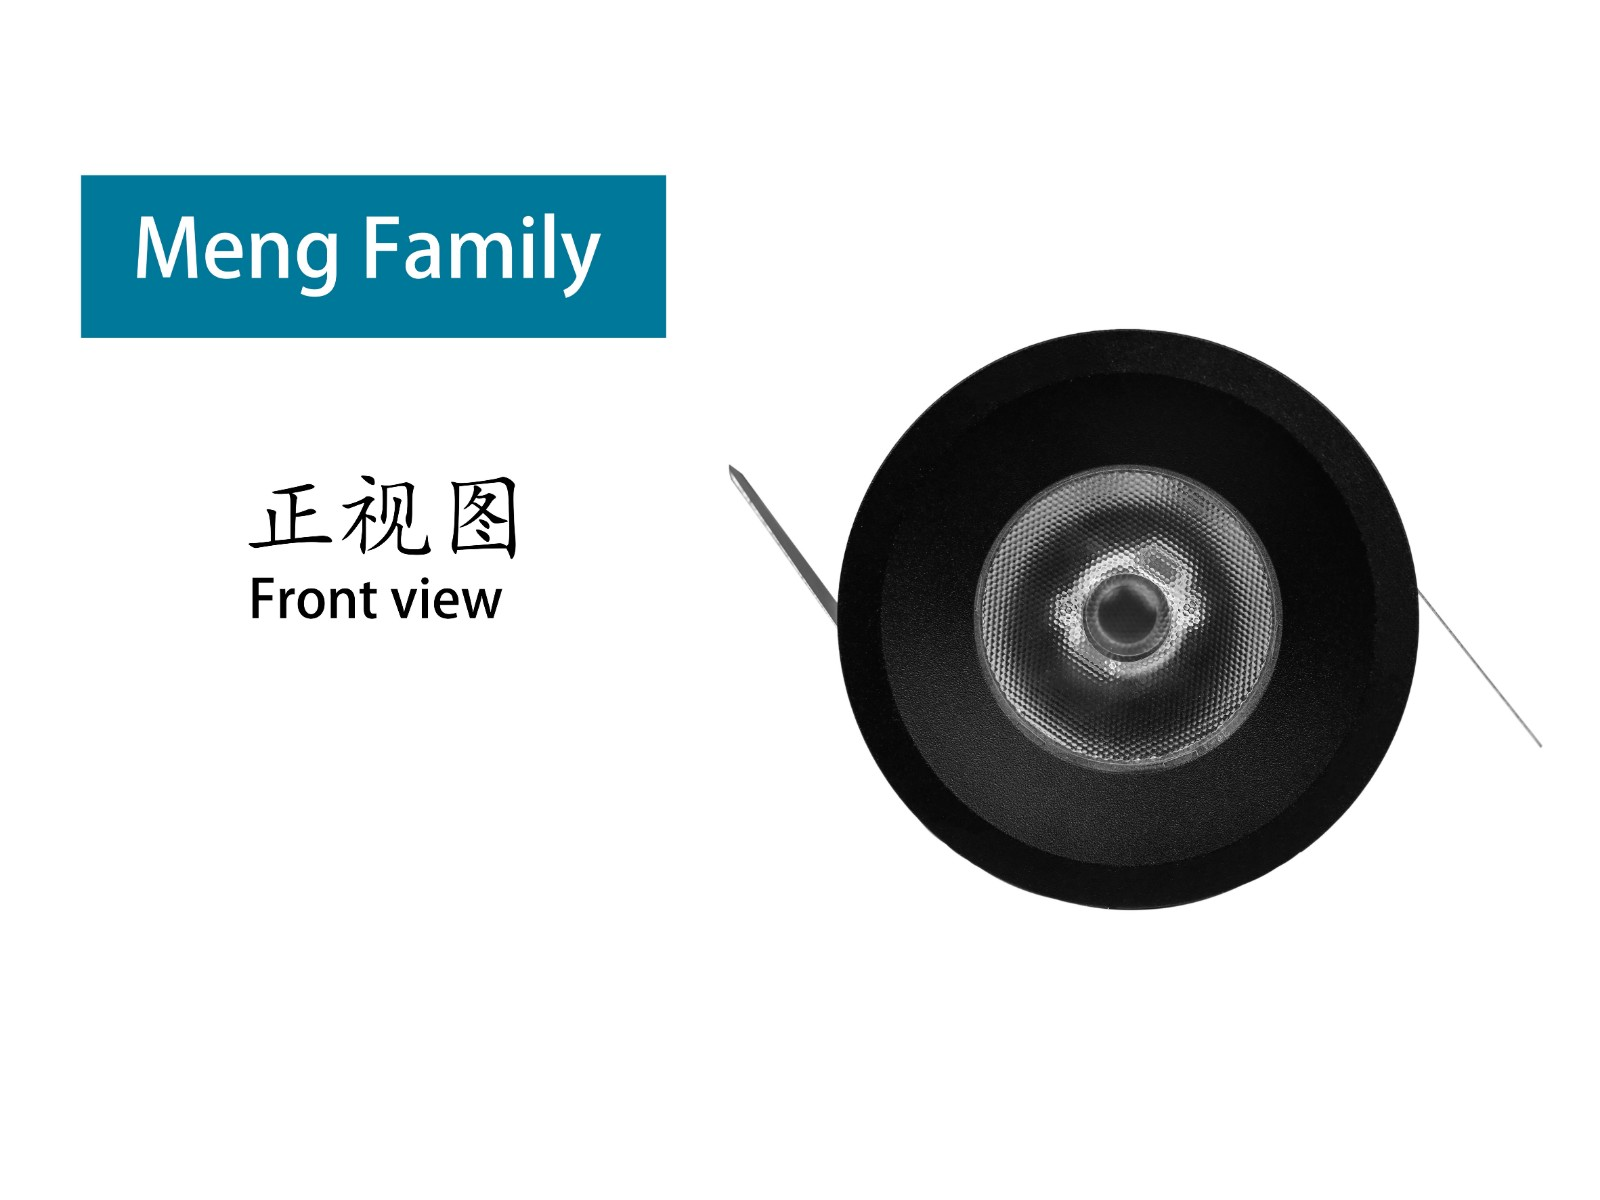 Mingfa Tech-New Product Pre-sale| Exquisite Compact Recessed Led Ceiling Spotlight-meng-1